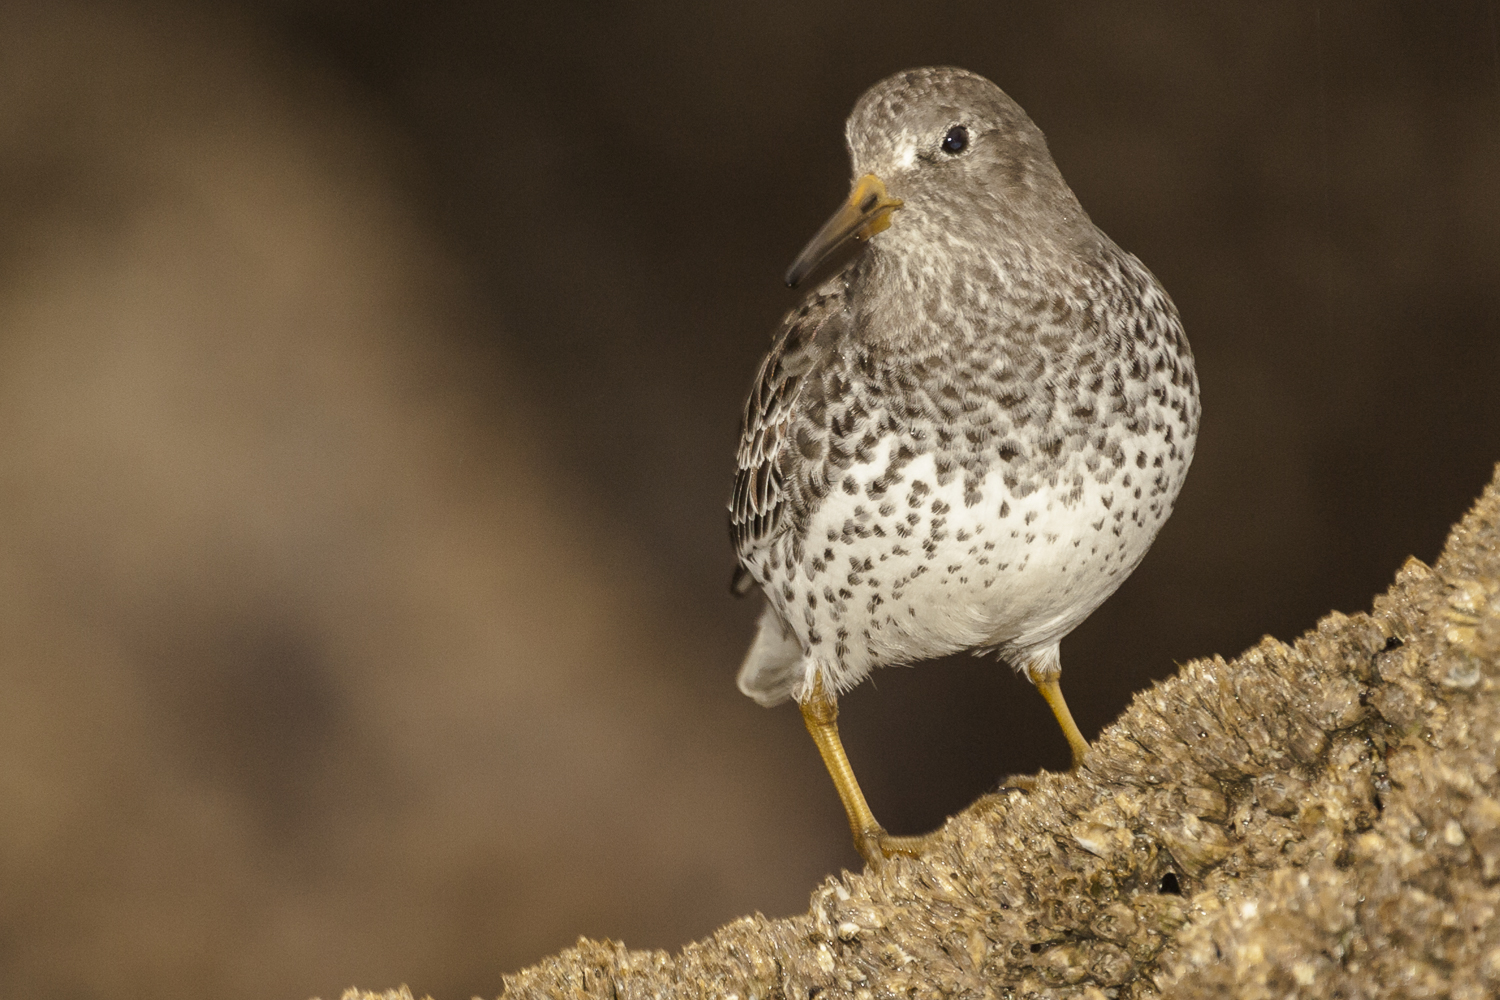 Rock Sandpiper taken with Fill Flash